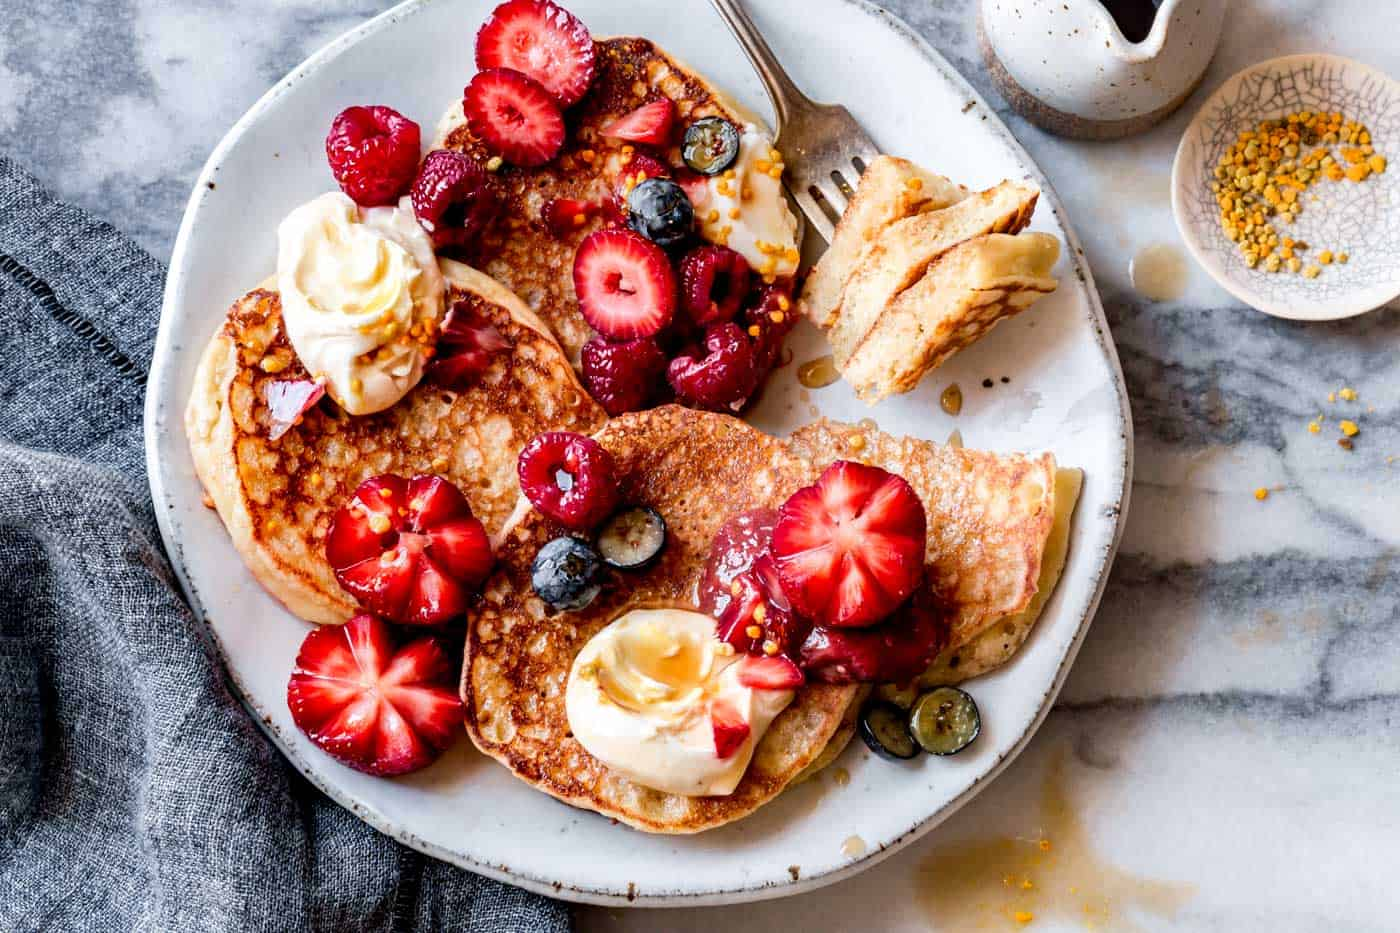 gluten-free lemon ricotta pancakes on a plate, horizontal